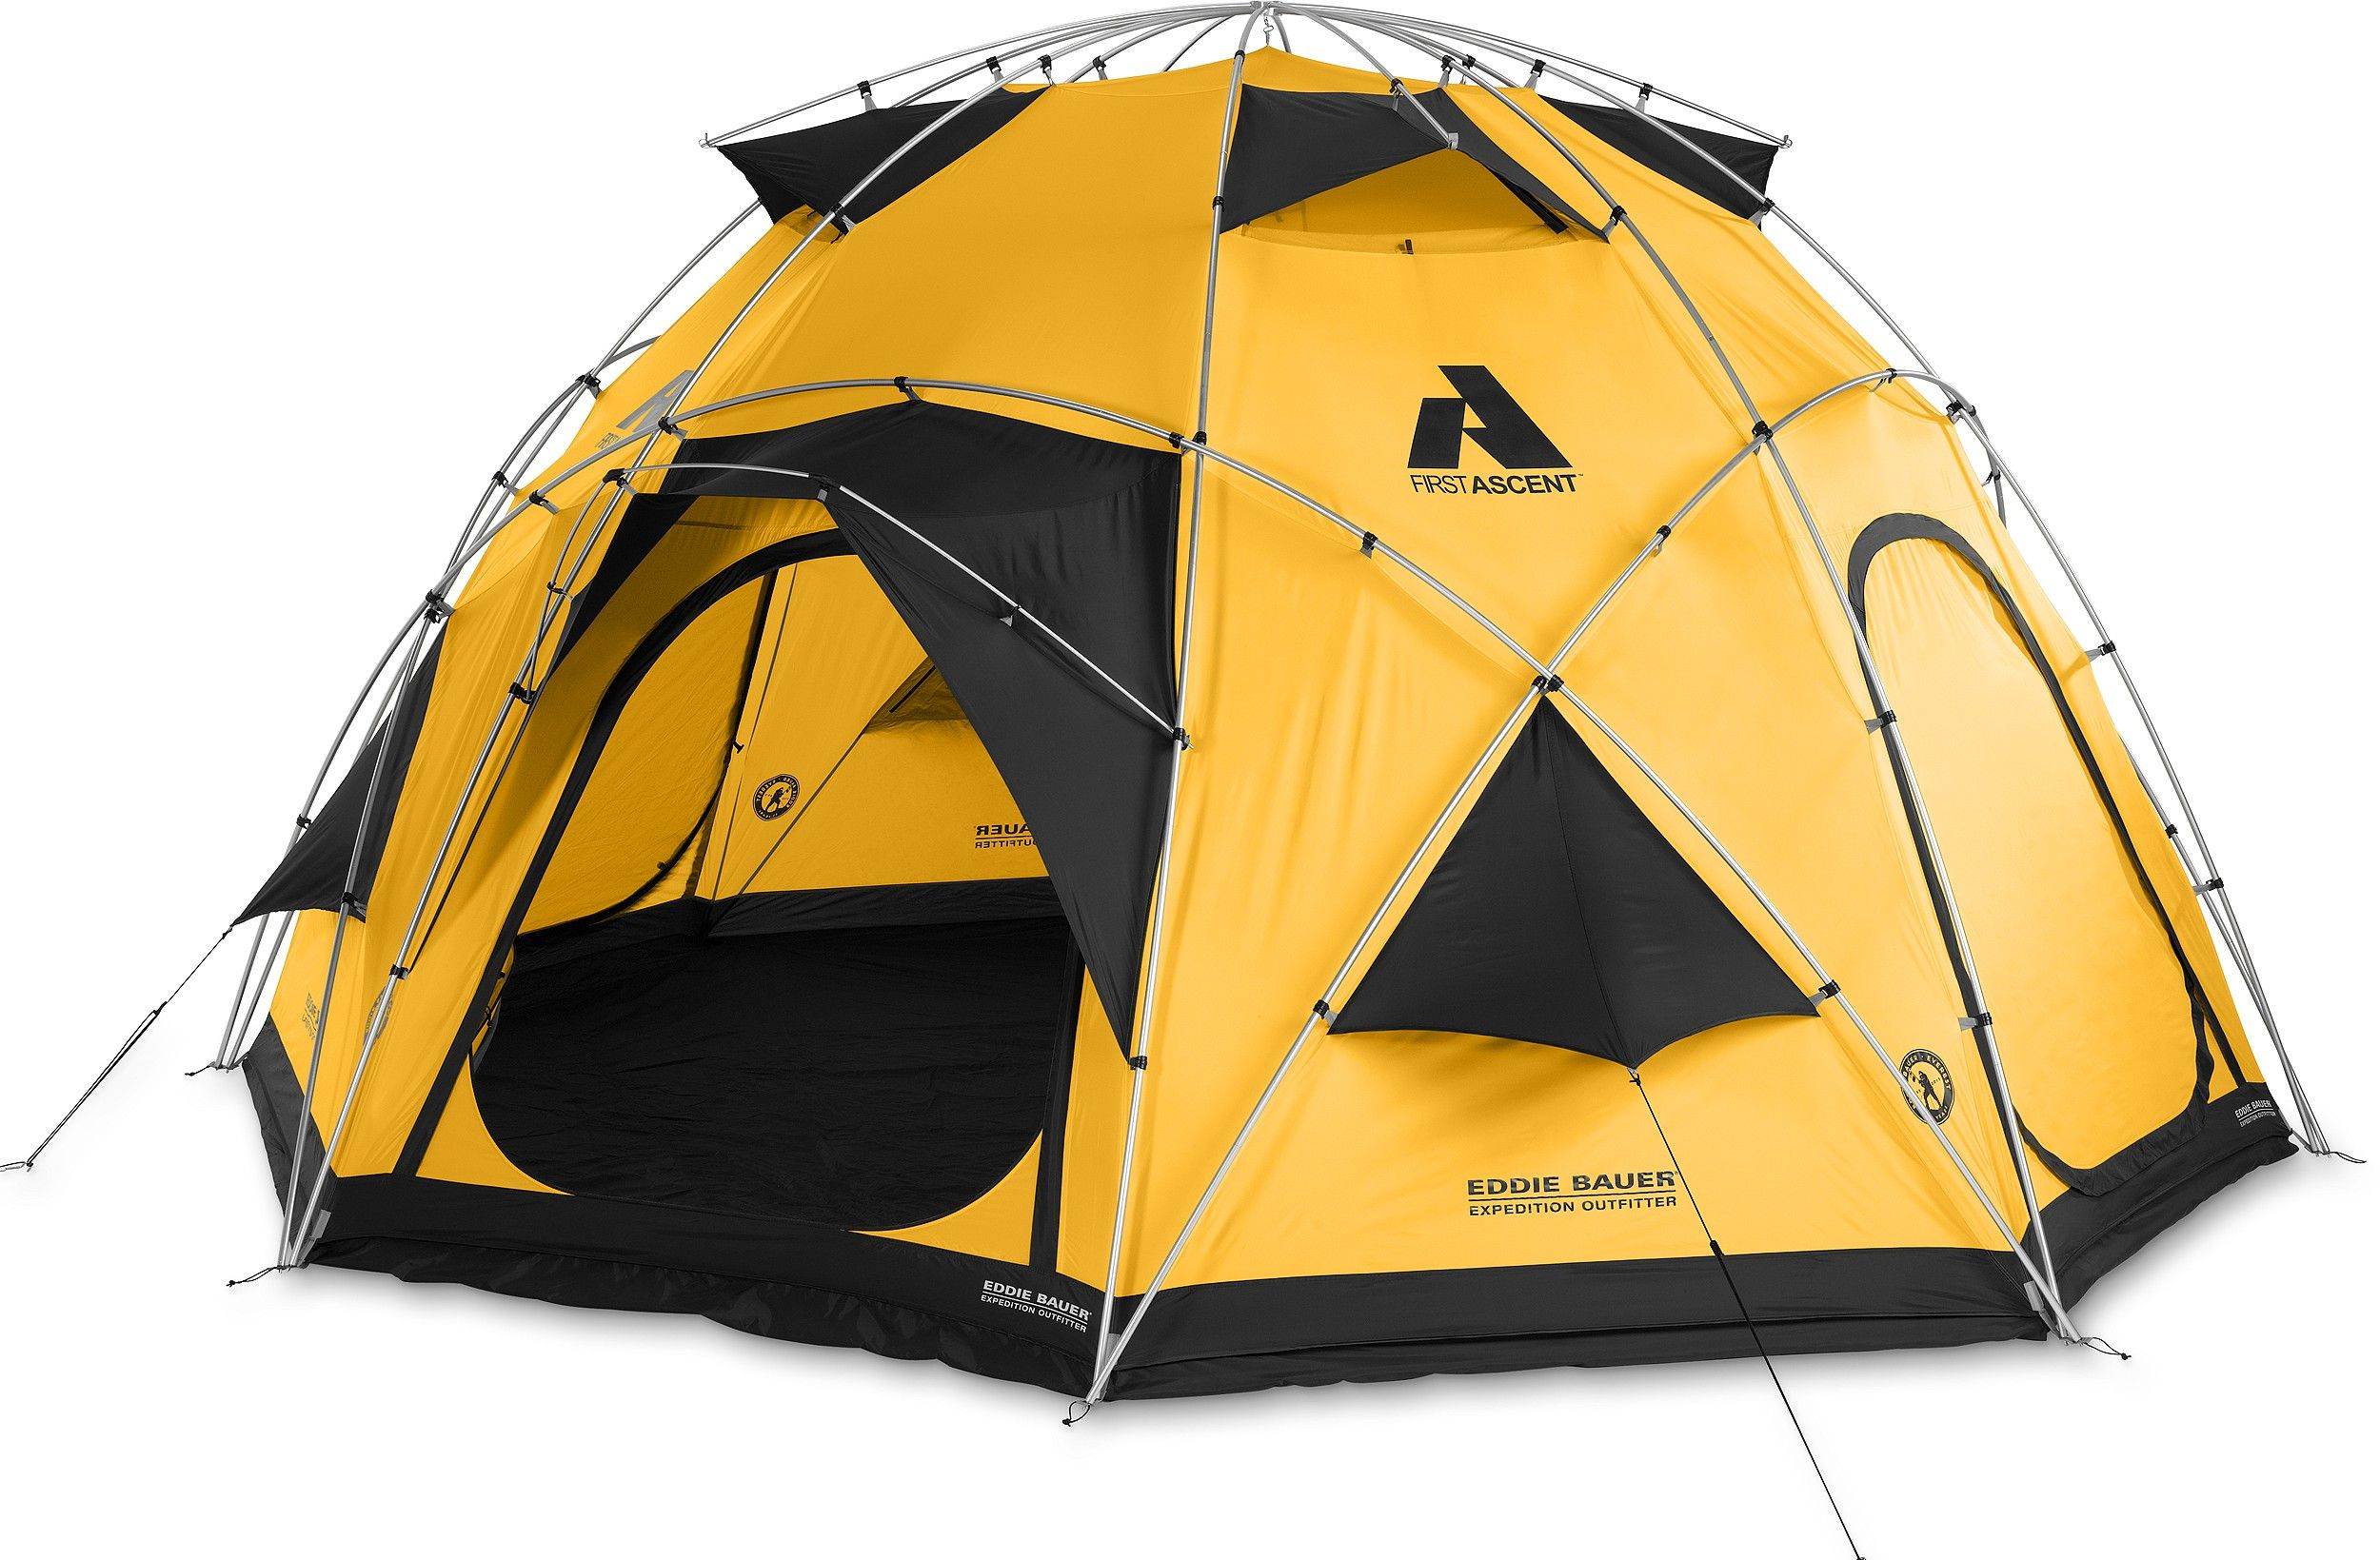 Pantheon Dome Tent | Every expedition needs to have a safe haven - a foundation on which the expedition can depend for support, supply of equipment, food and communication.